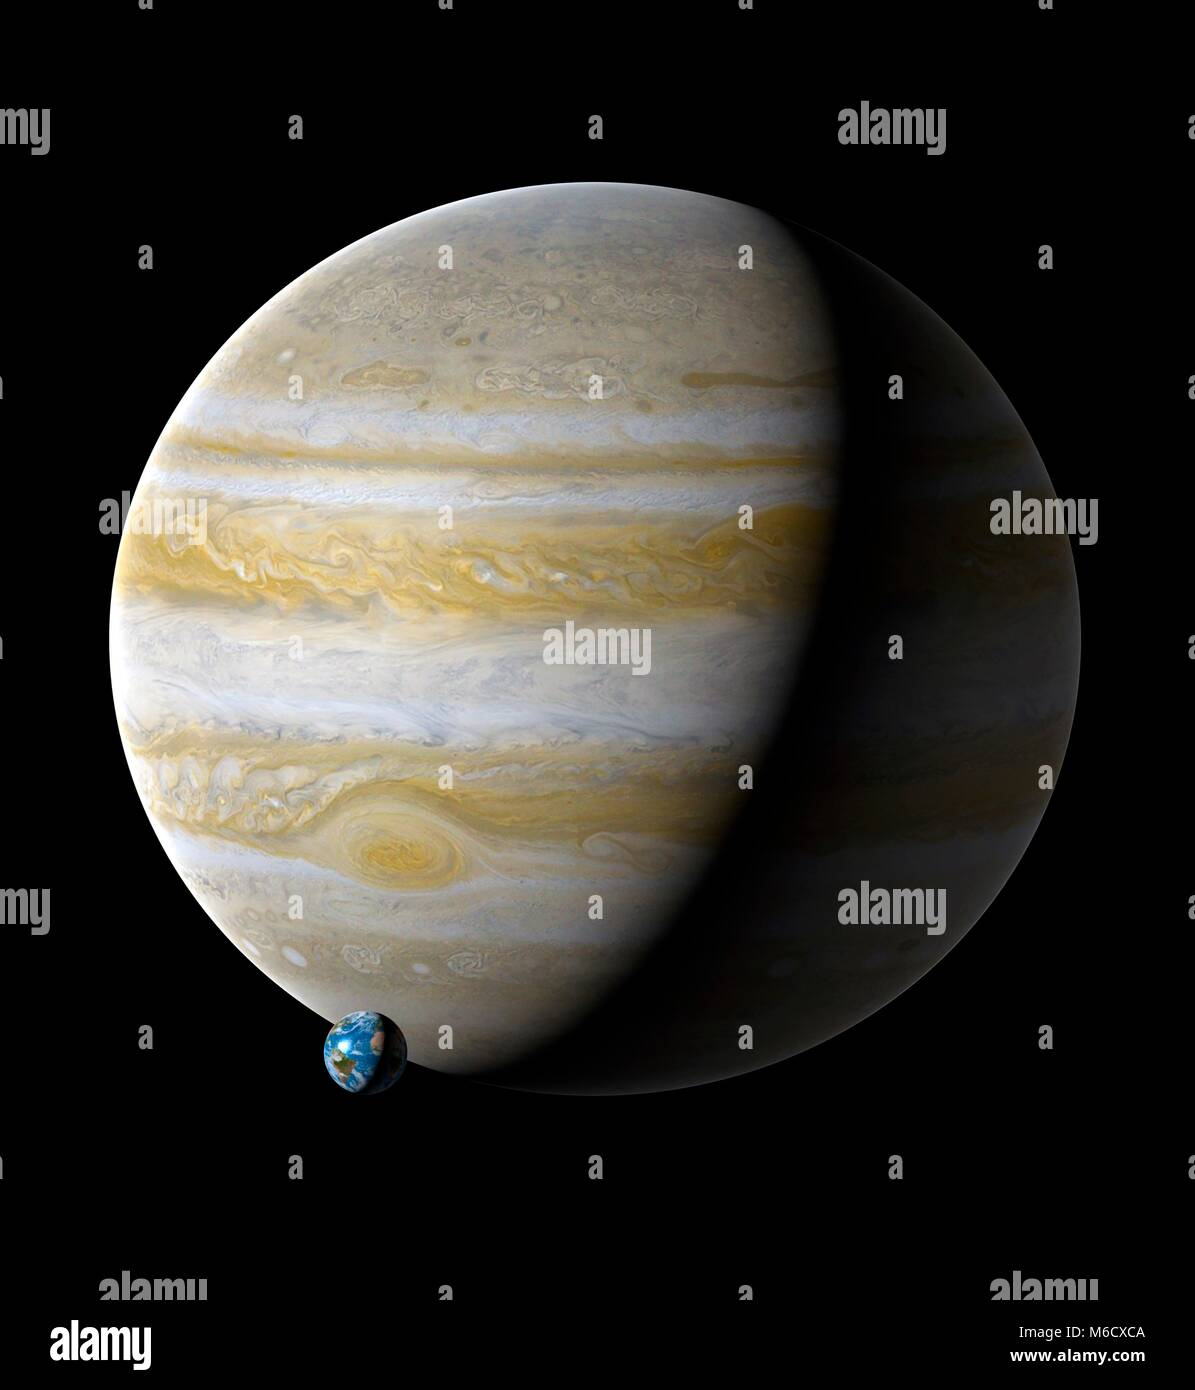 Image comparing the size of Earth (left) with the planet Jupiter. Jupiter is the fifth planet from the Sun, with - Stock Image